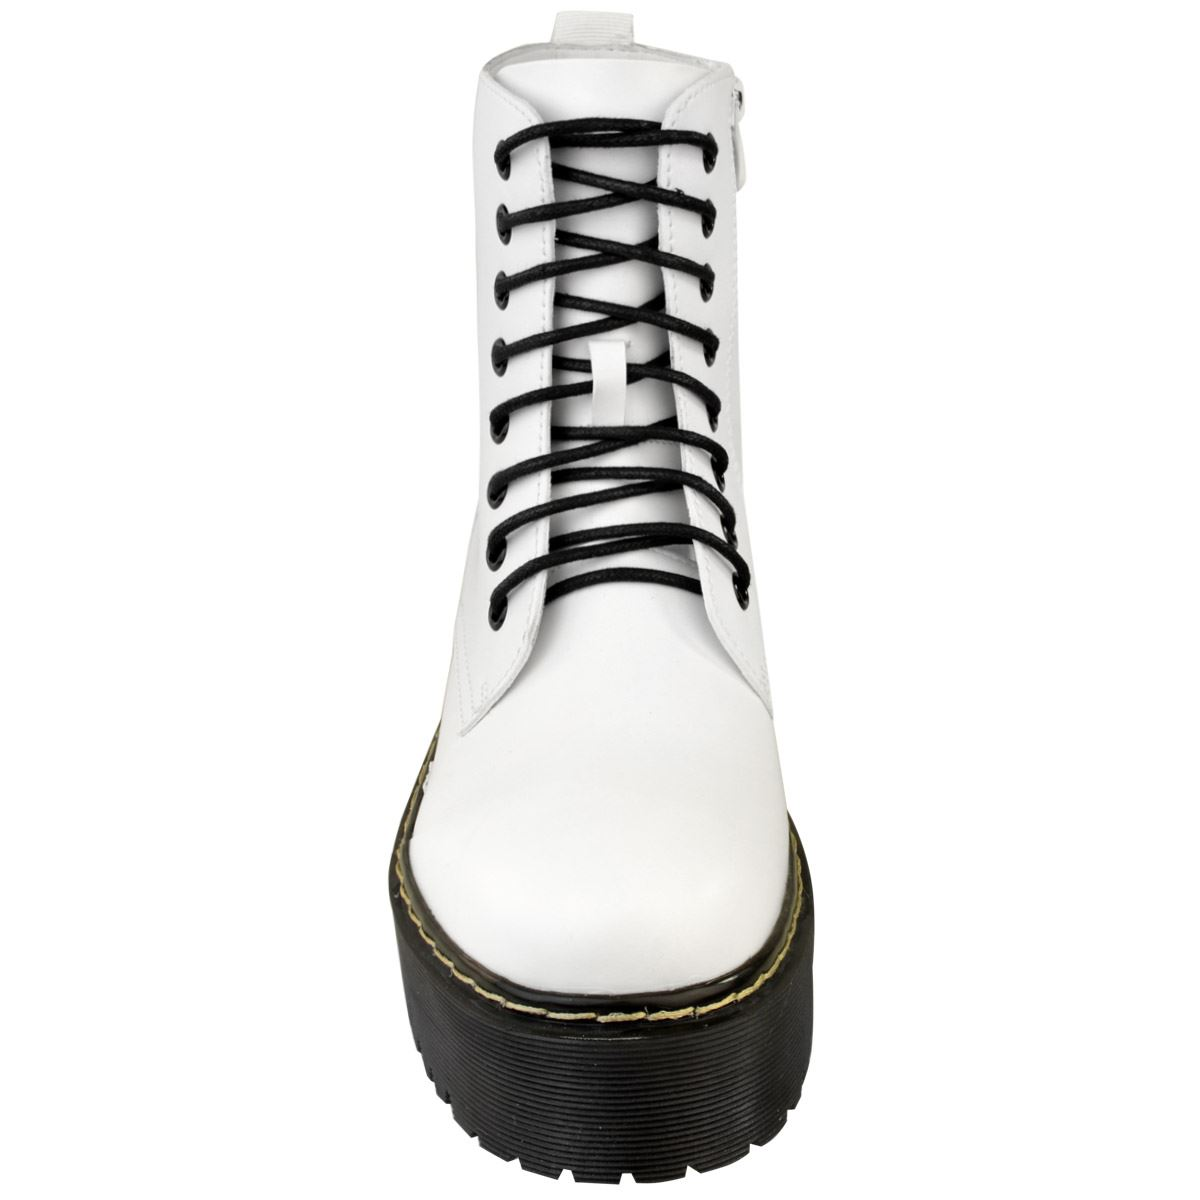 Womens-Ladies-Doc-Chunky-Lace-Up-Ankle-Boots-Platform-Icon-Retro-Goth-Punk-Black thumbnail 16